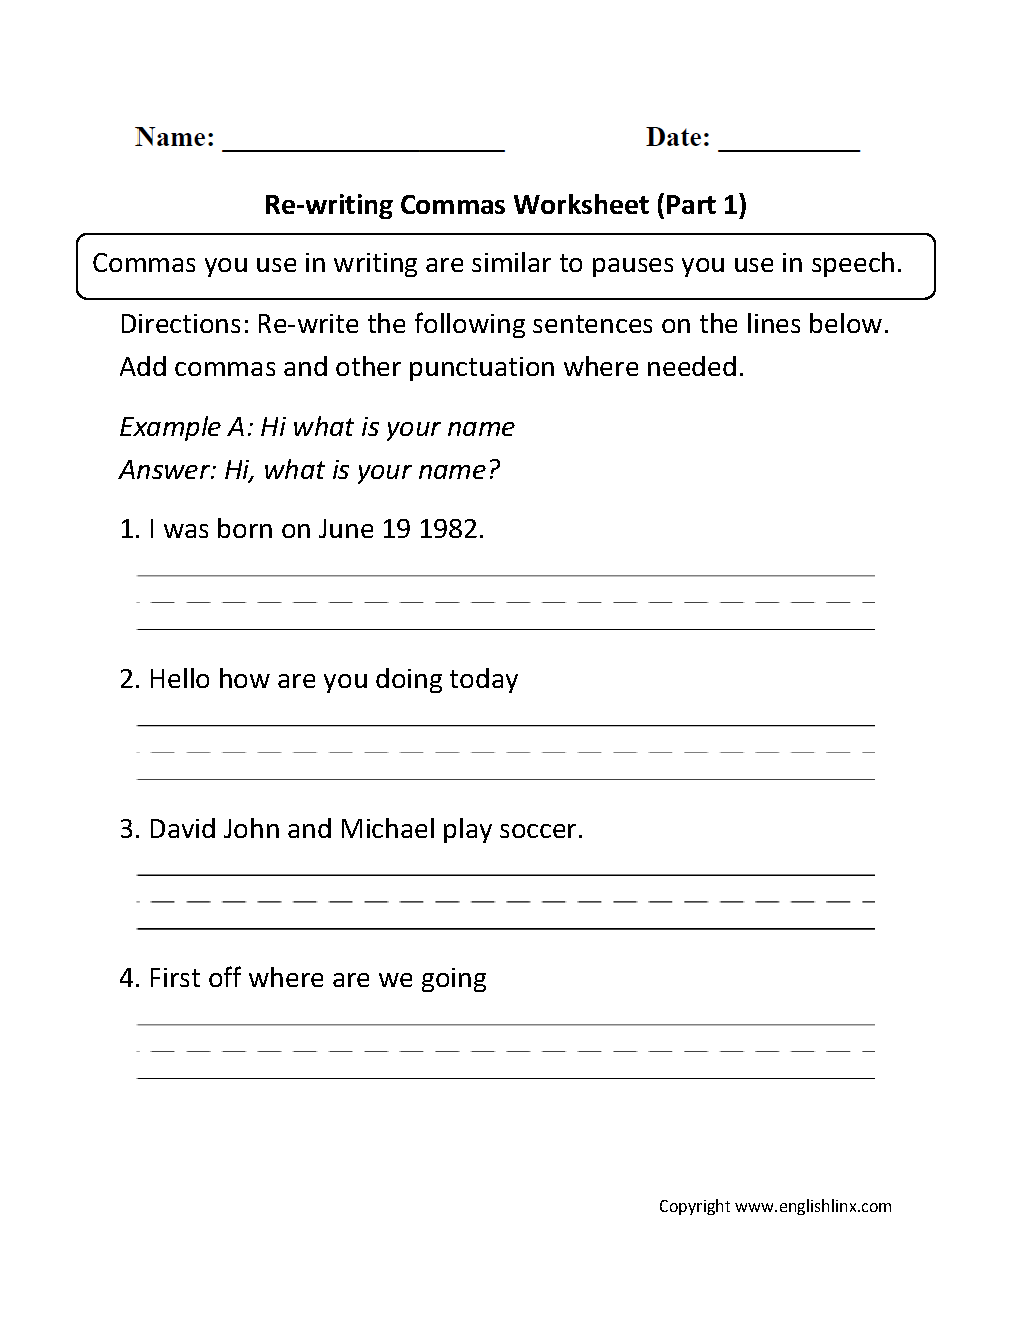 Worksheets Commas Worksheets englishlinx com commas worksheets part 1